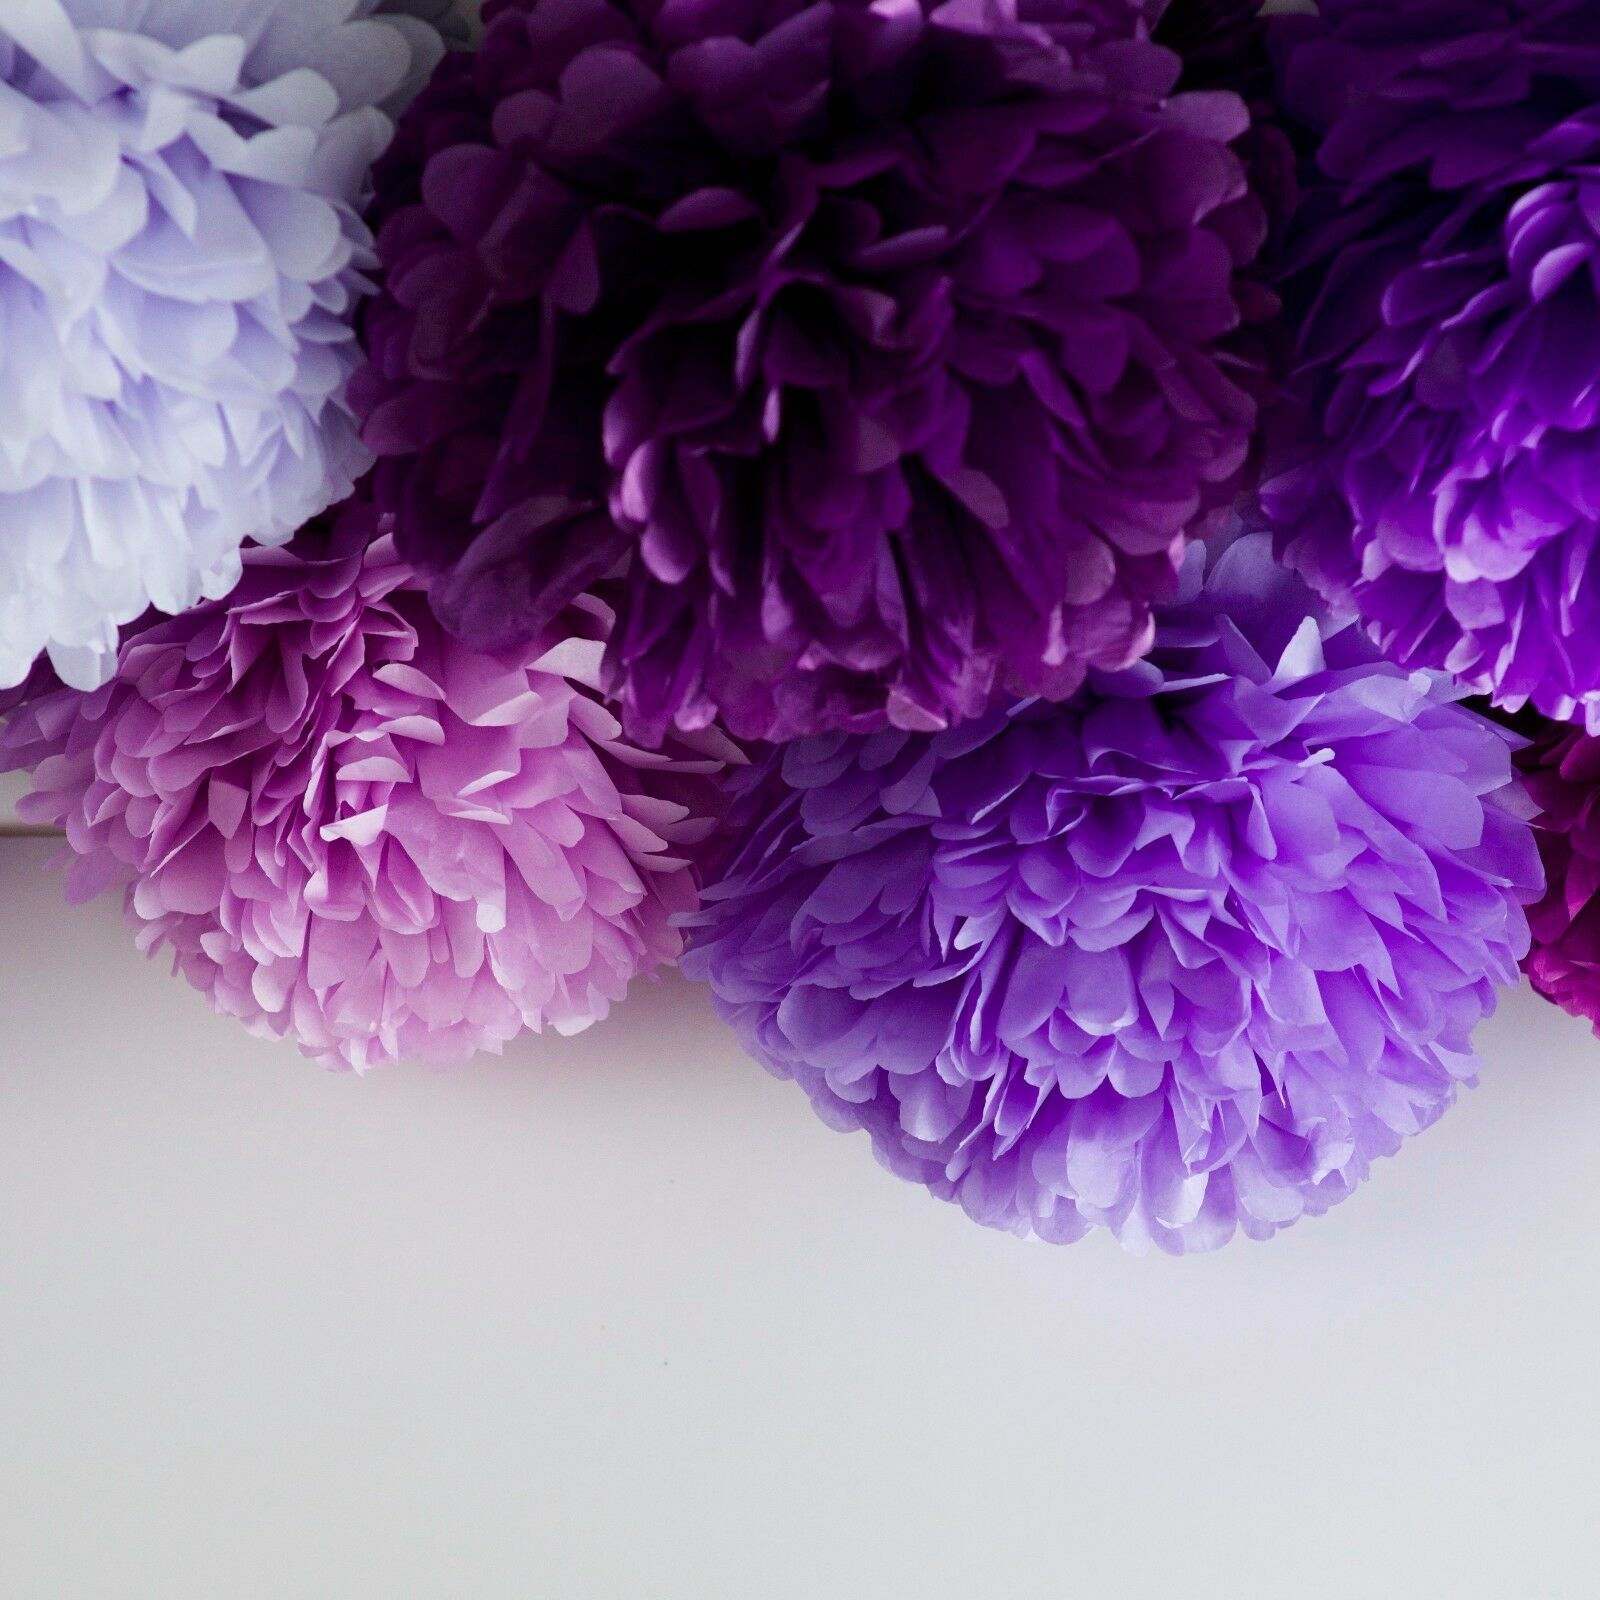 60 tissue paper pompoms - 6 Größes - wedding party decorations - multi Farbe